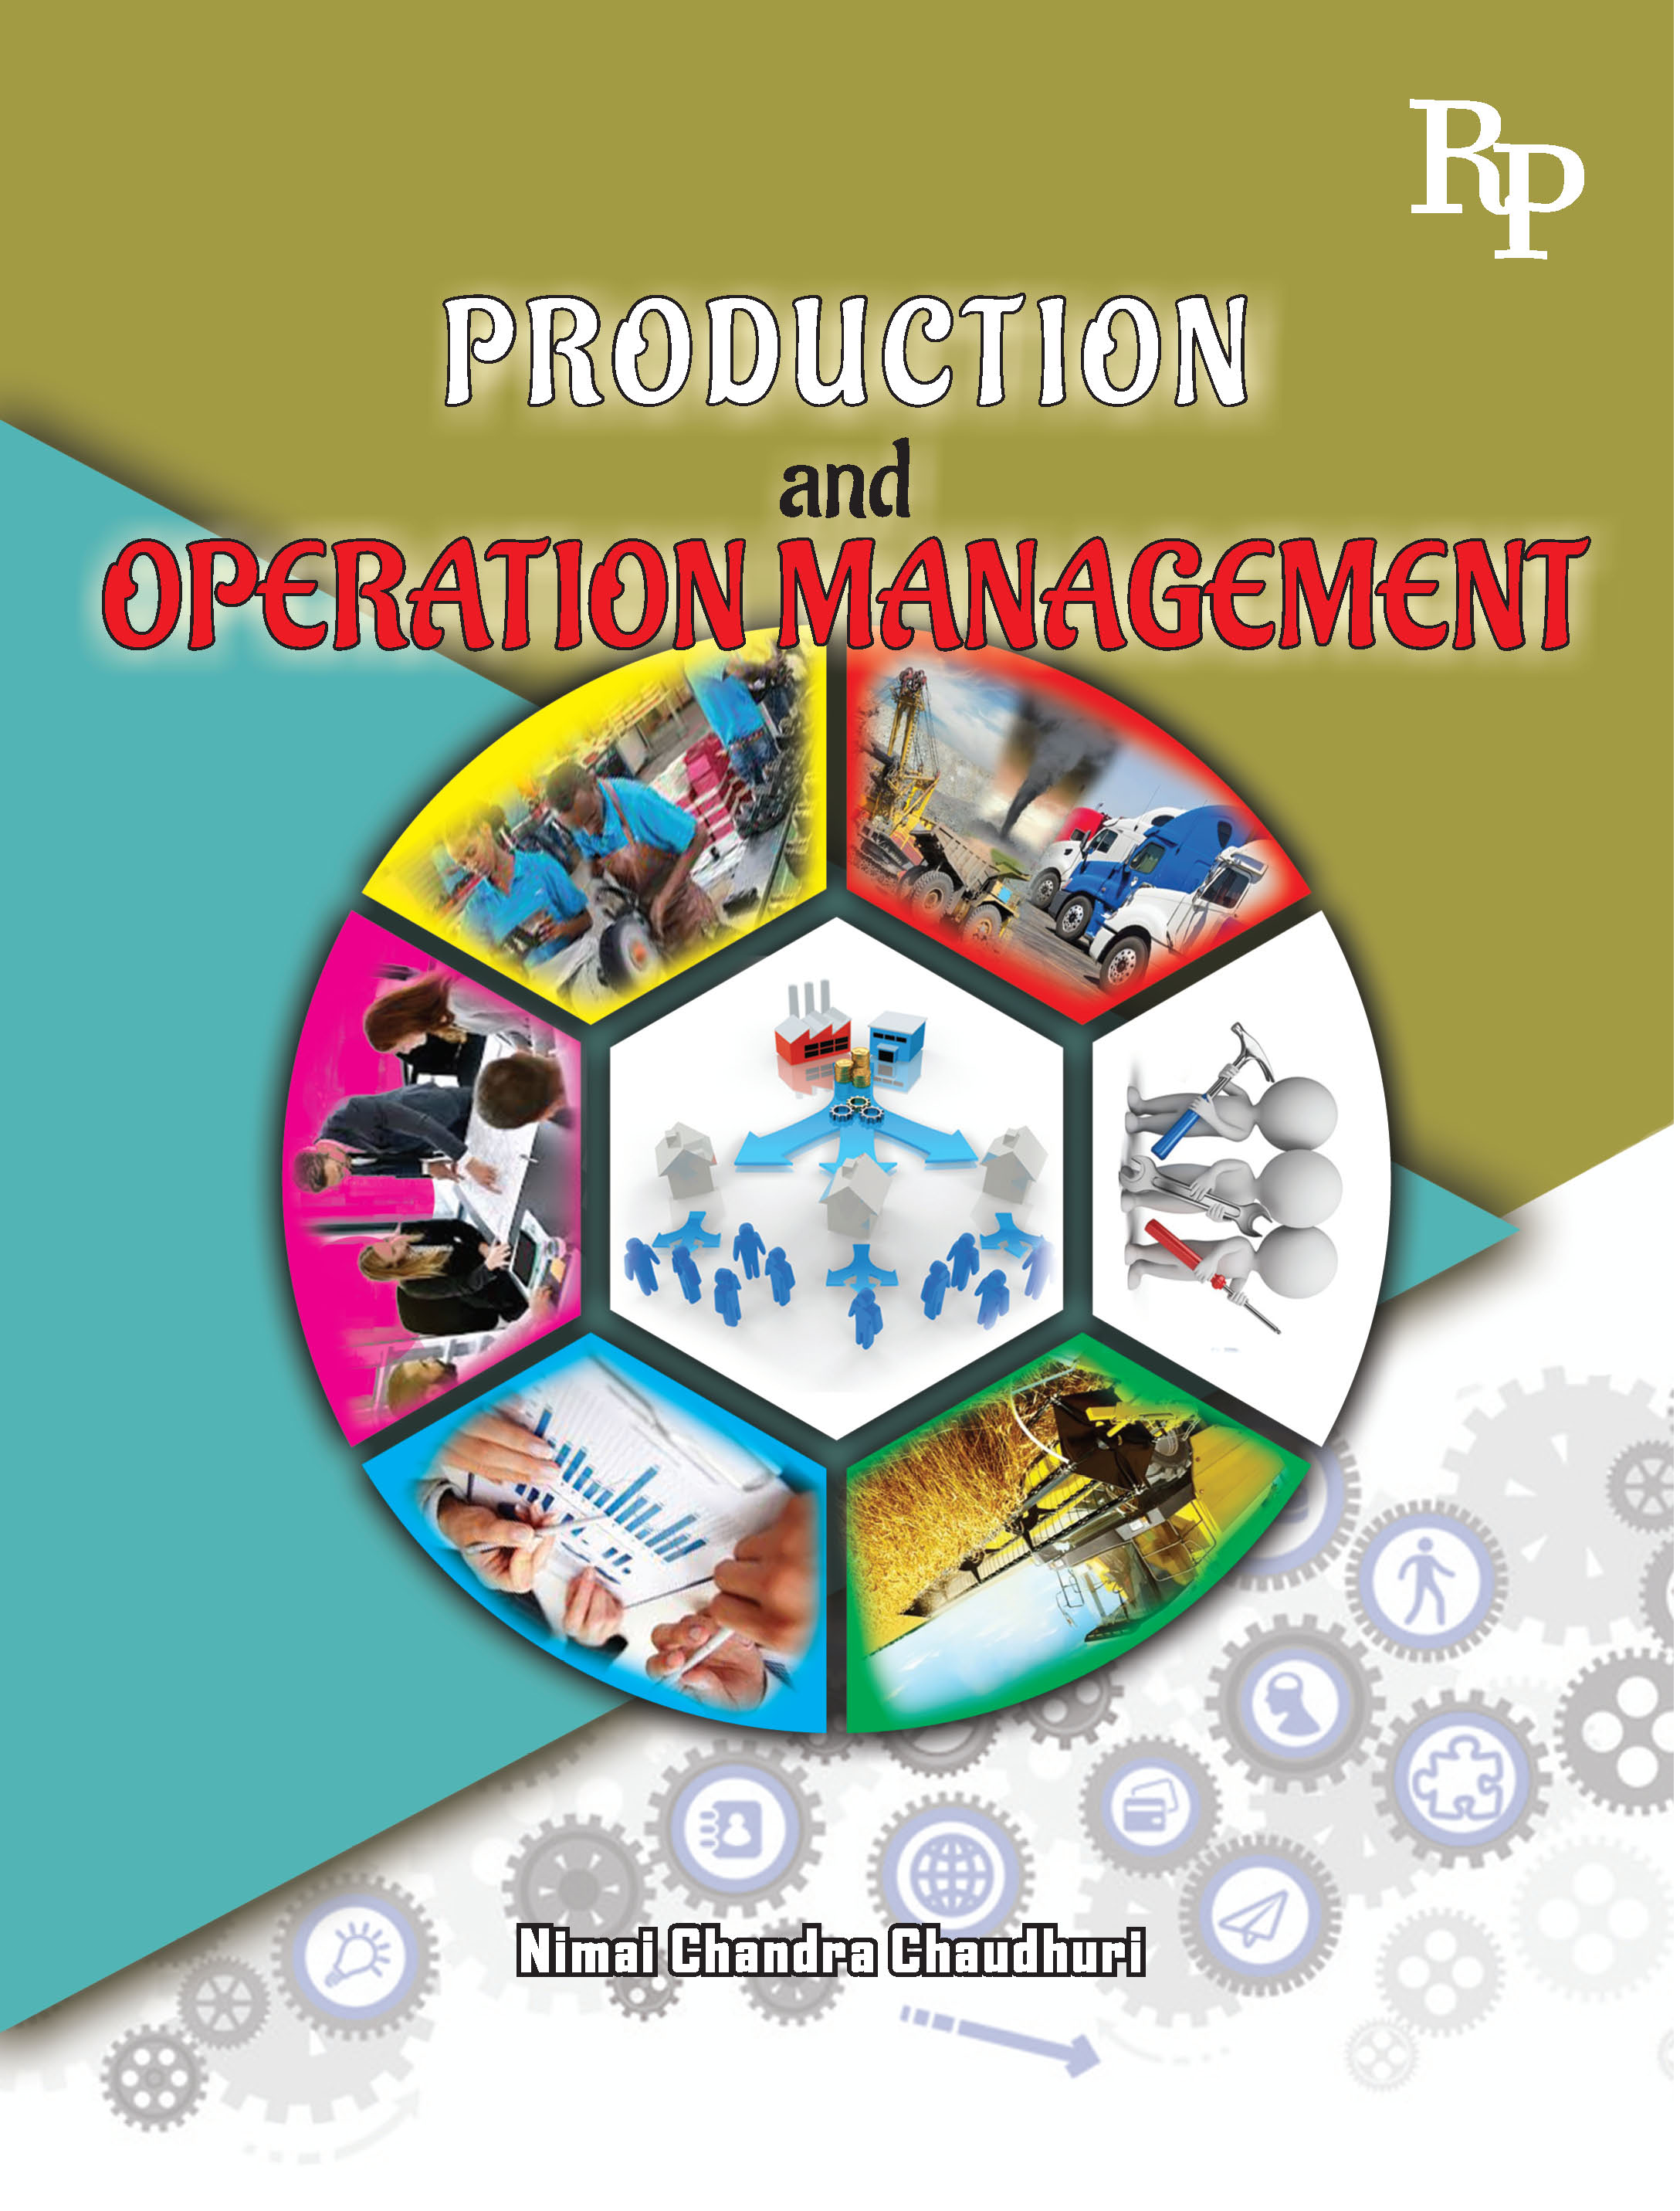 Production and Operation Management.jpg